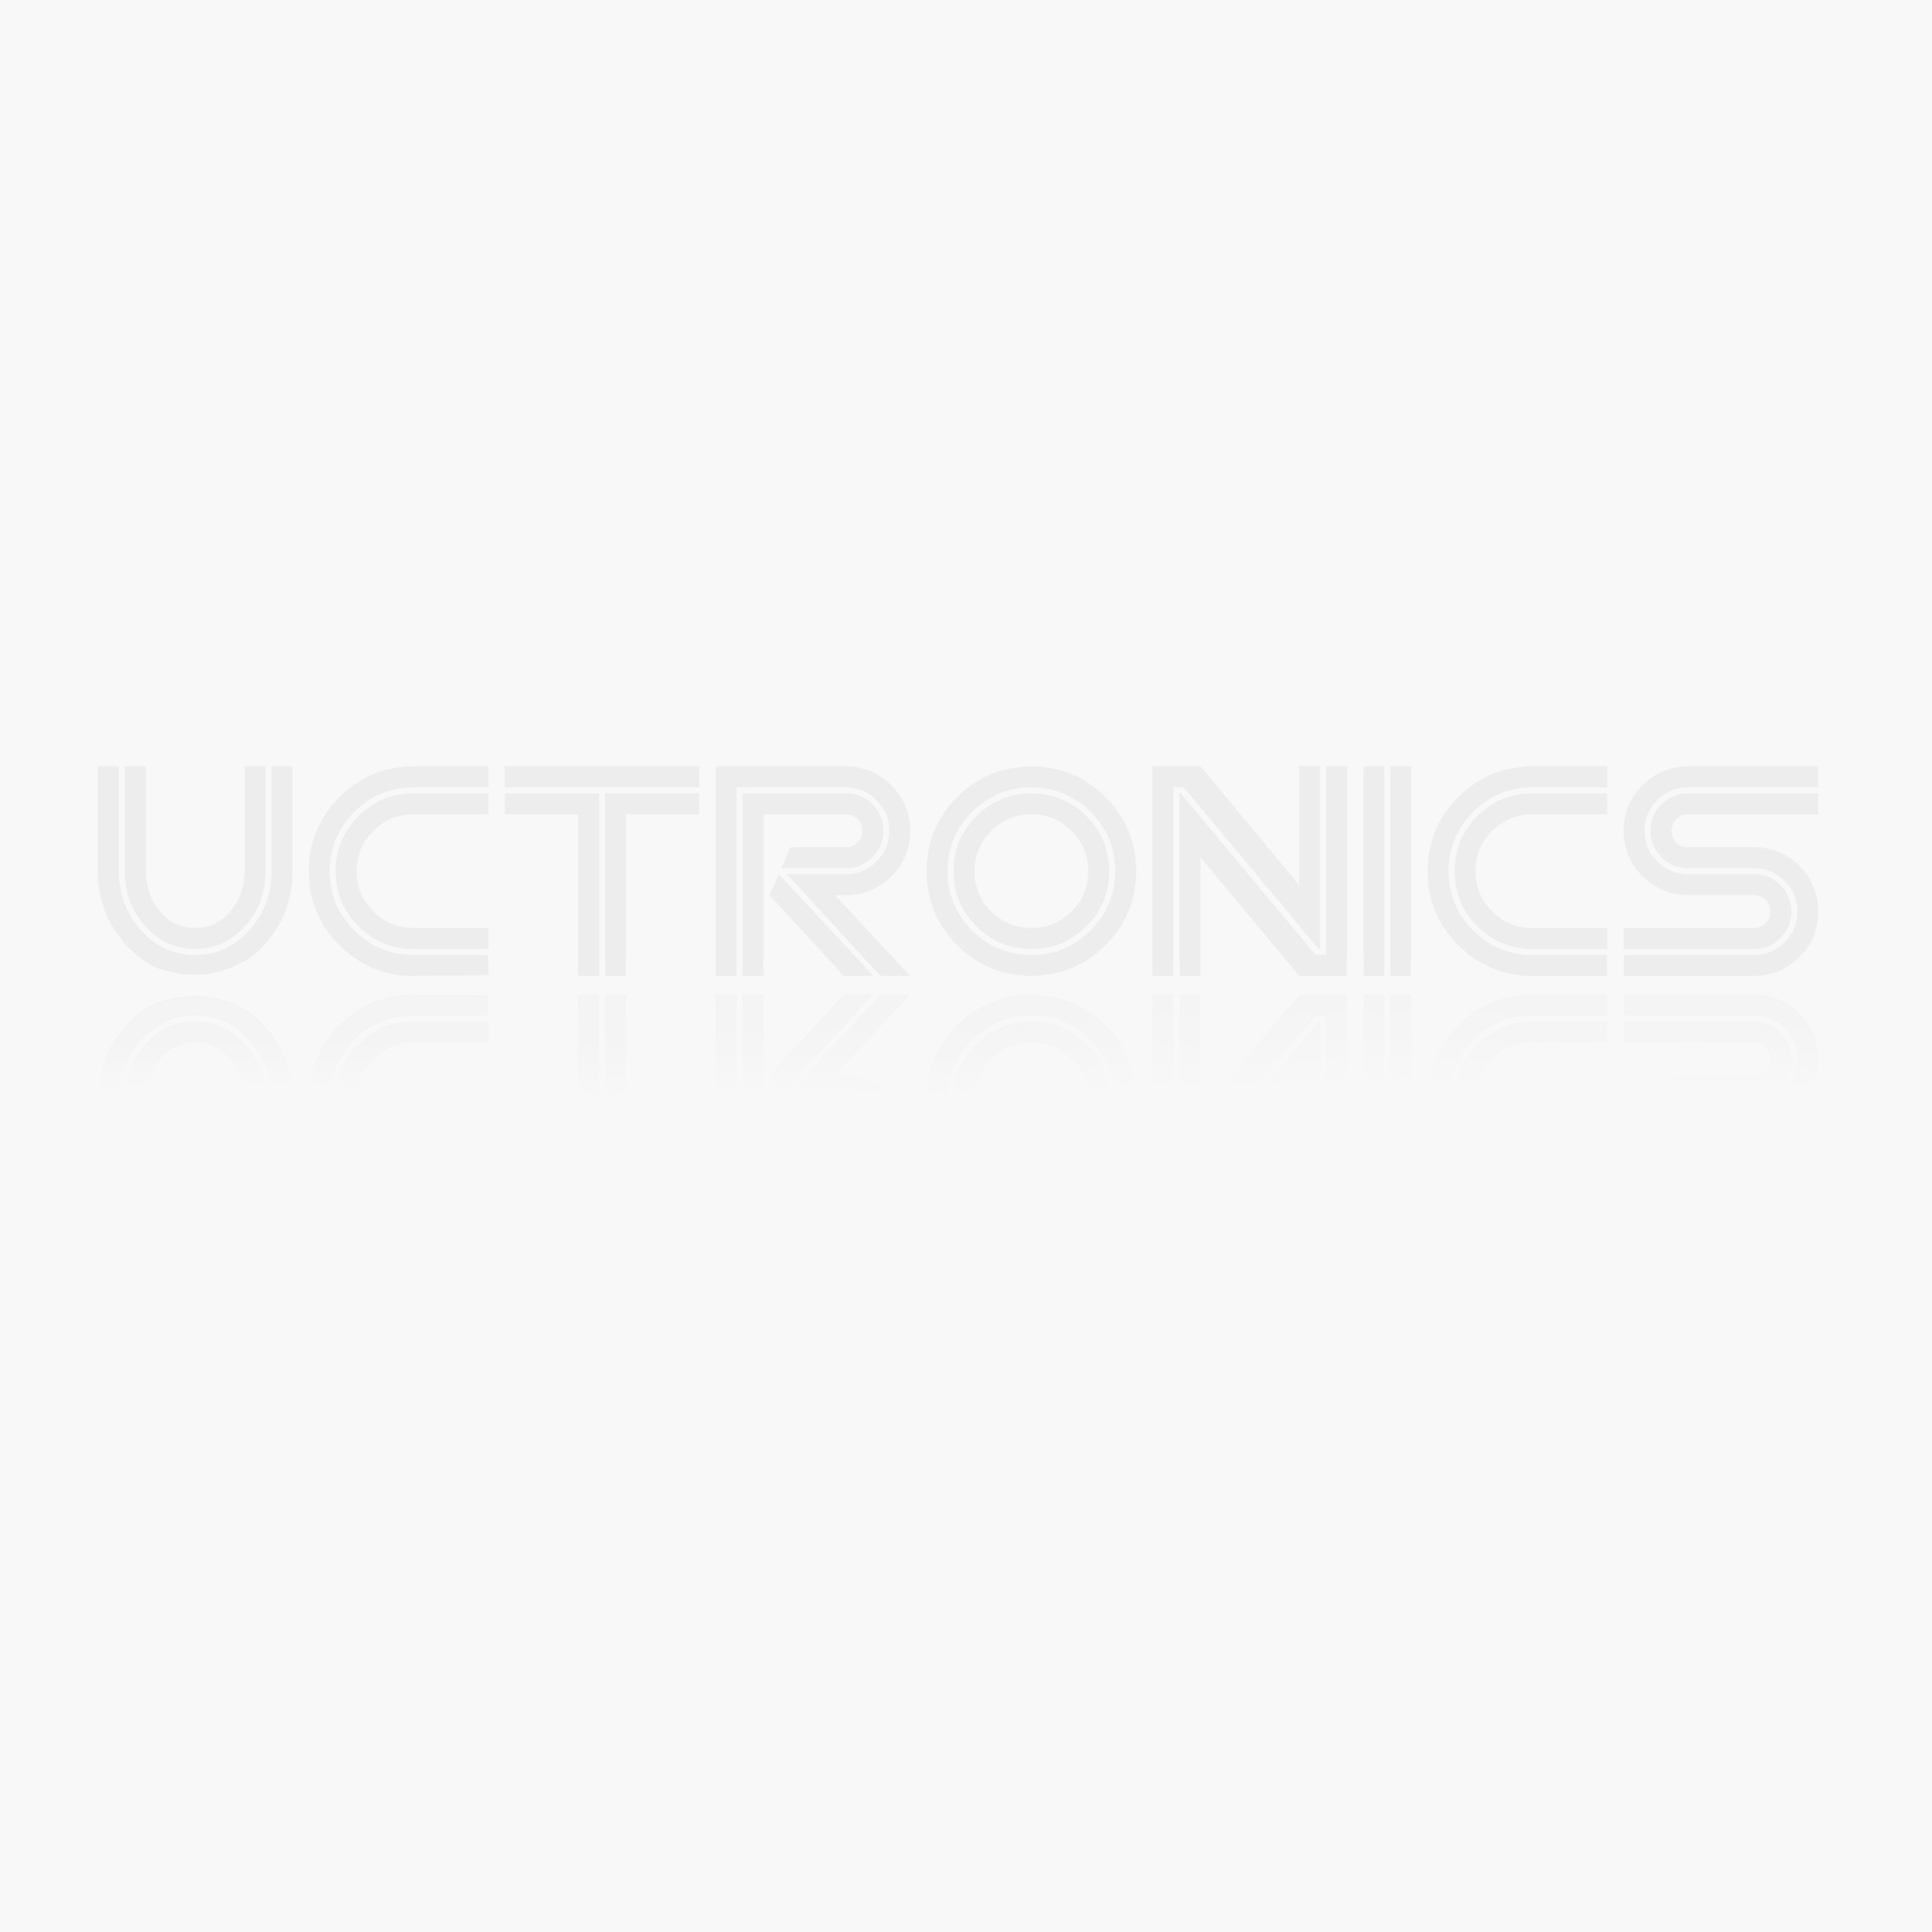 UCTRONICS 3 5 Inch HDMI TFT LCD Display with Touch Screen, Touch Pen, 3  Heat Sinks for Raspberry Pi 3 Model B, Pi 2 Model B, Pi B+